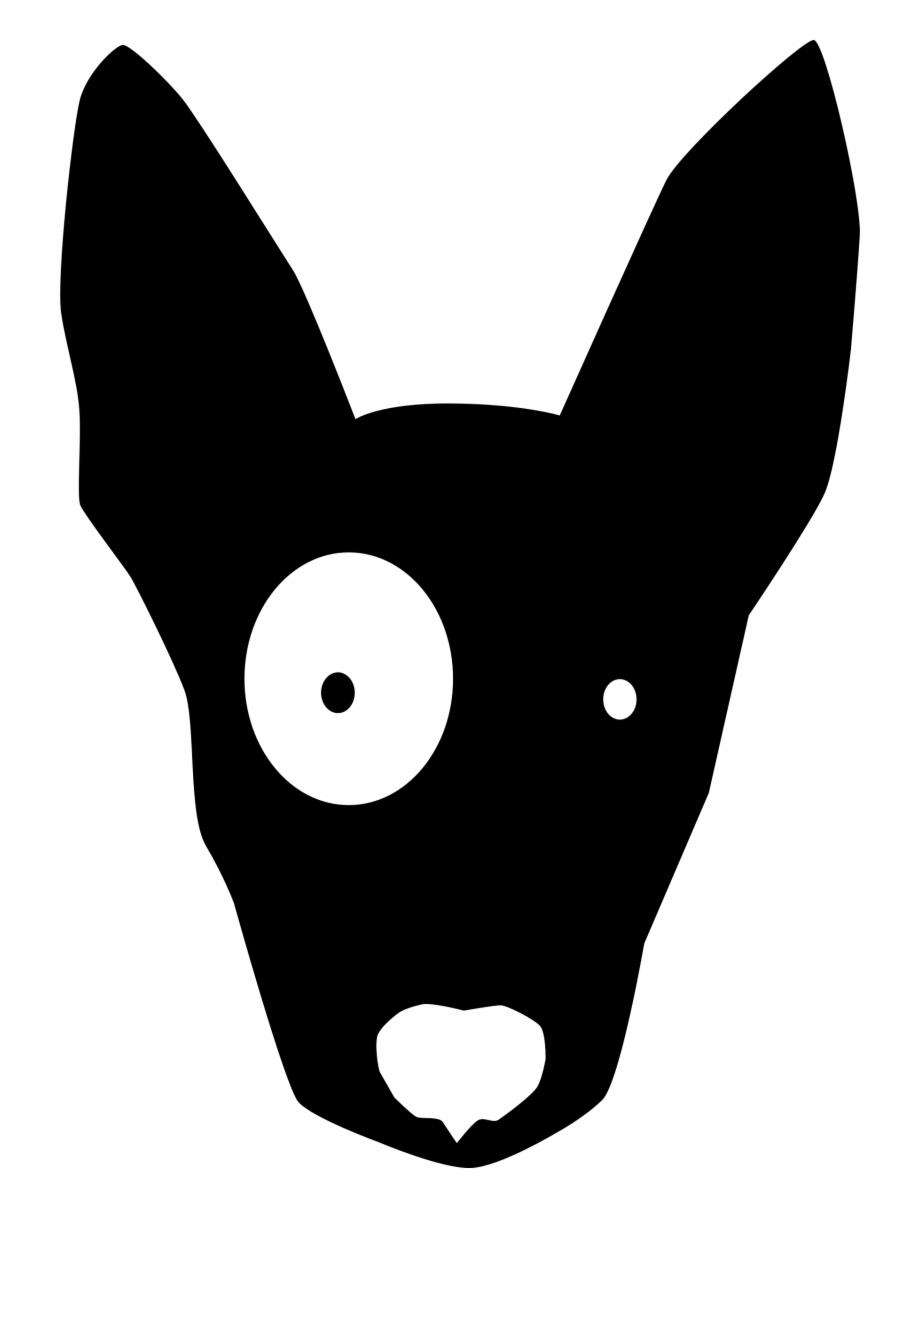 Black Cartoon Dog Silhouette Dog Face Clipart Transparent Png Download 1012620 Vippng